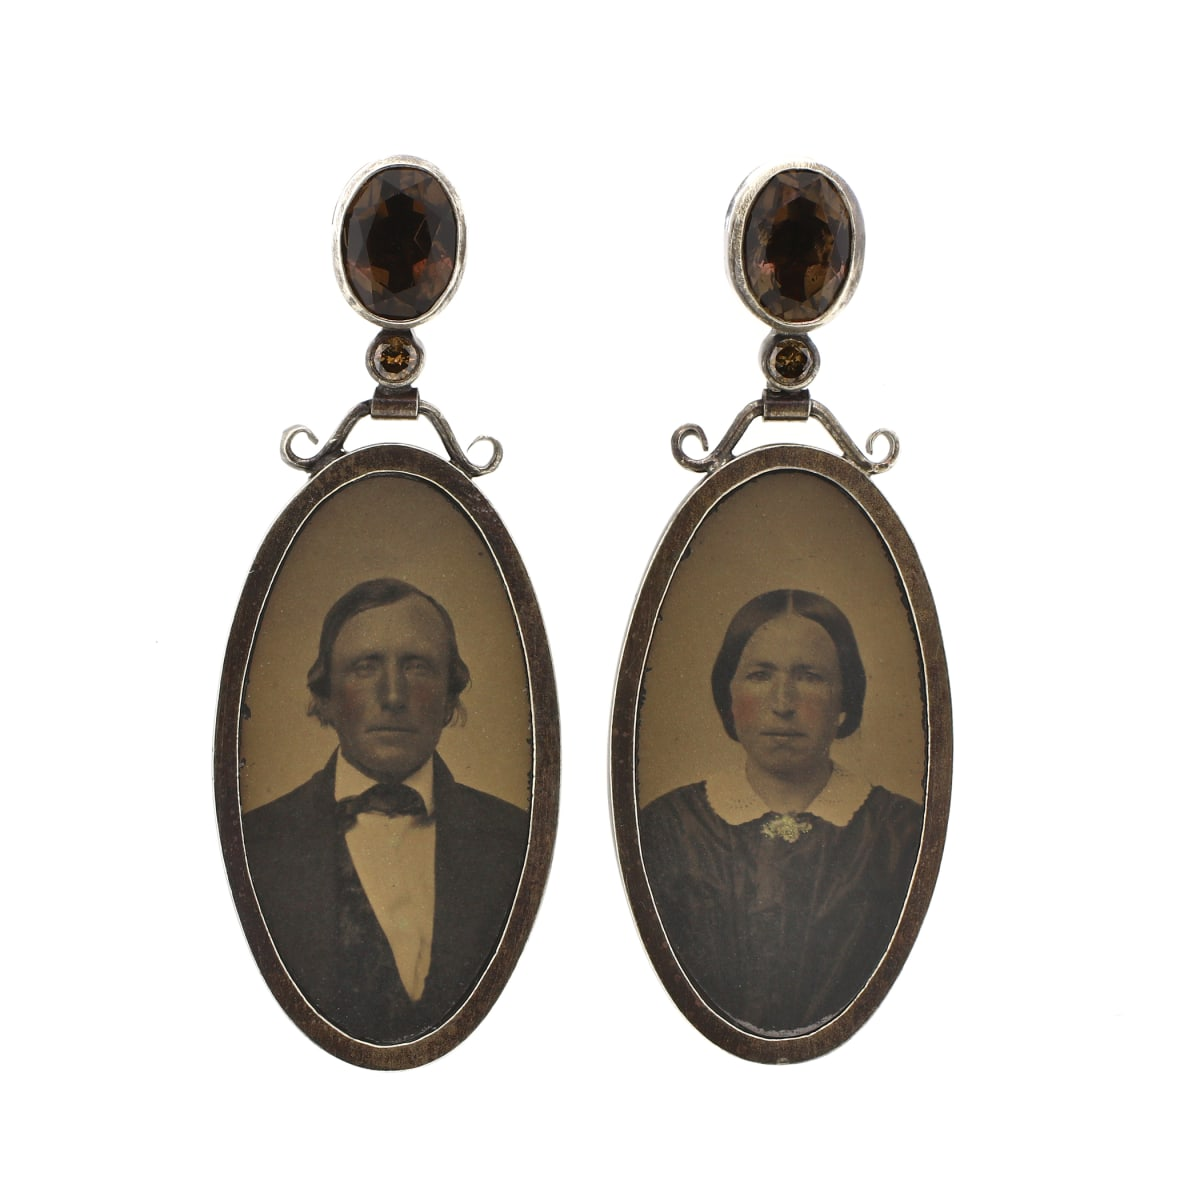 Megan McGaffigan, Arranged Marriage II